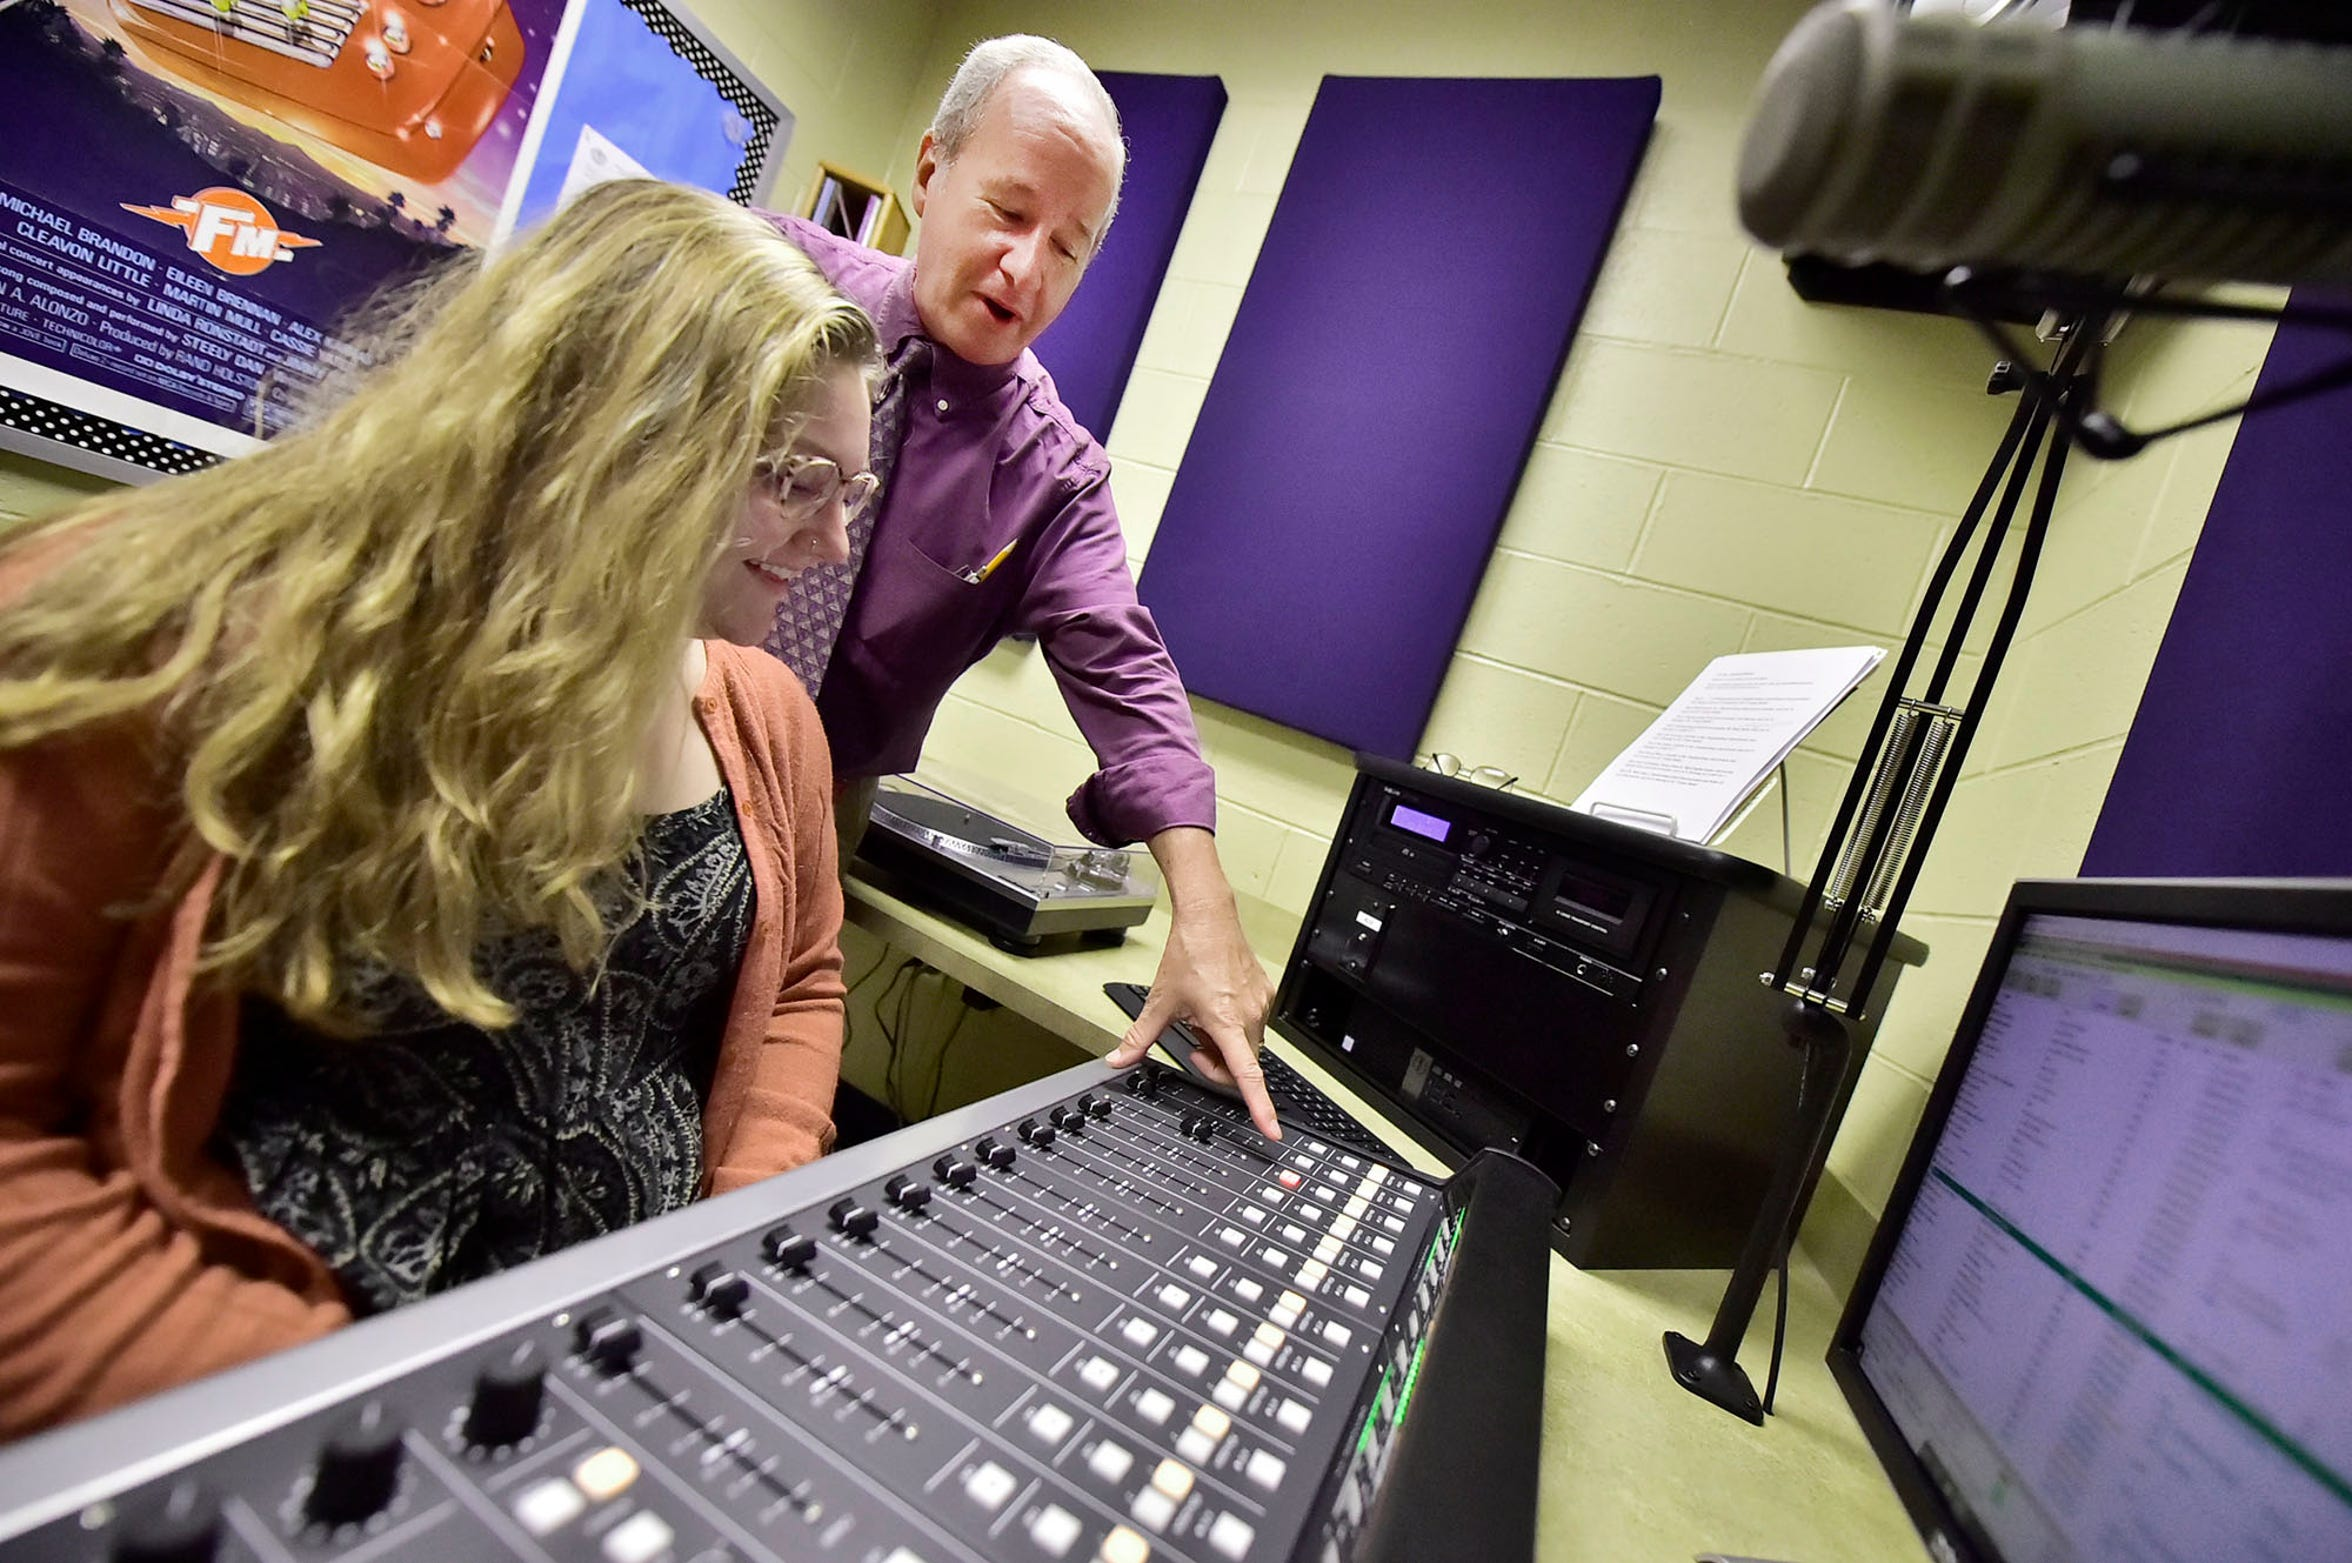 Andy Berrier teaches student Zoe Hobbs, 17, about the equipment in their radio station. Chambersburg Area School District started a radio station about 18 months ago. Students are being trained to go on air.